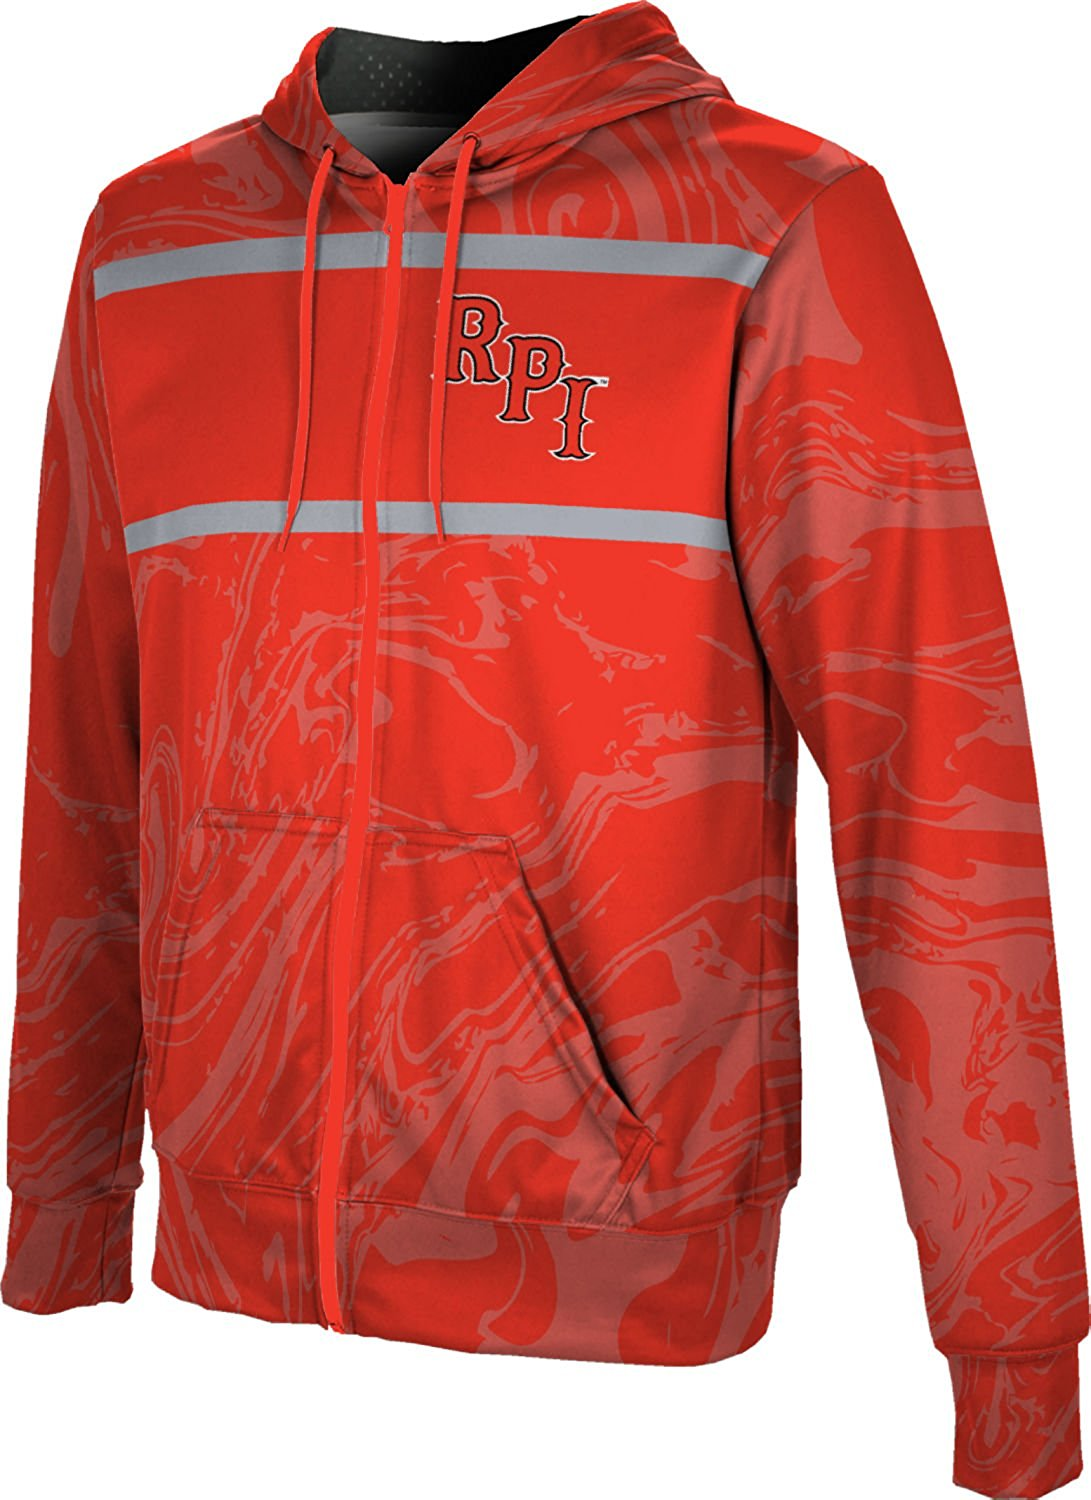 ProSphere Rensselaer Polytechnic Institute University Boys' Fullzip Hoodie - Ripple